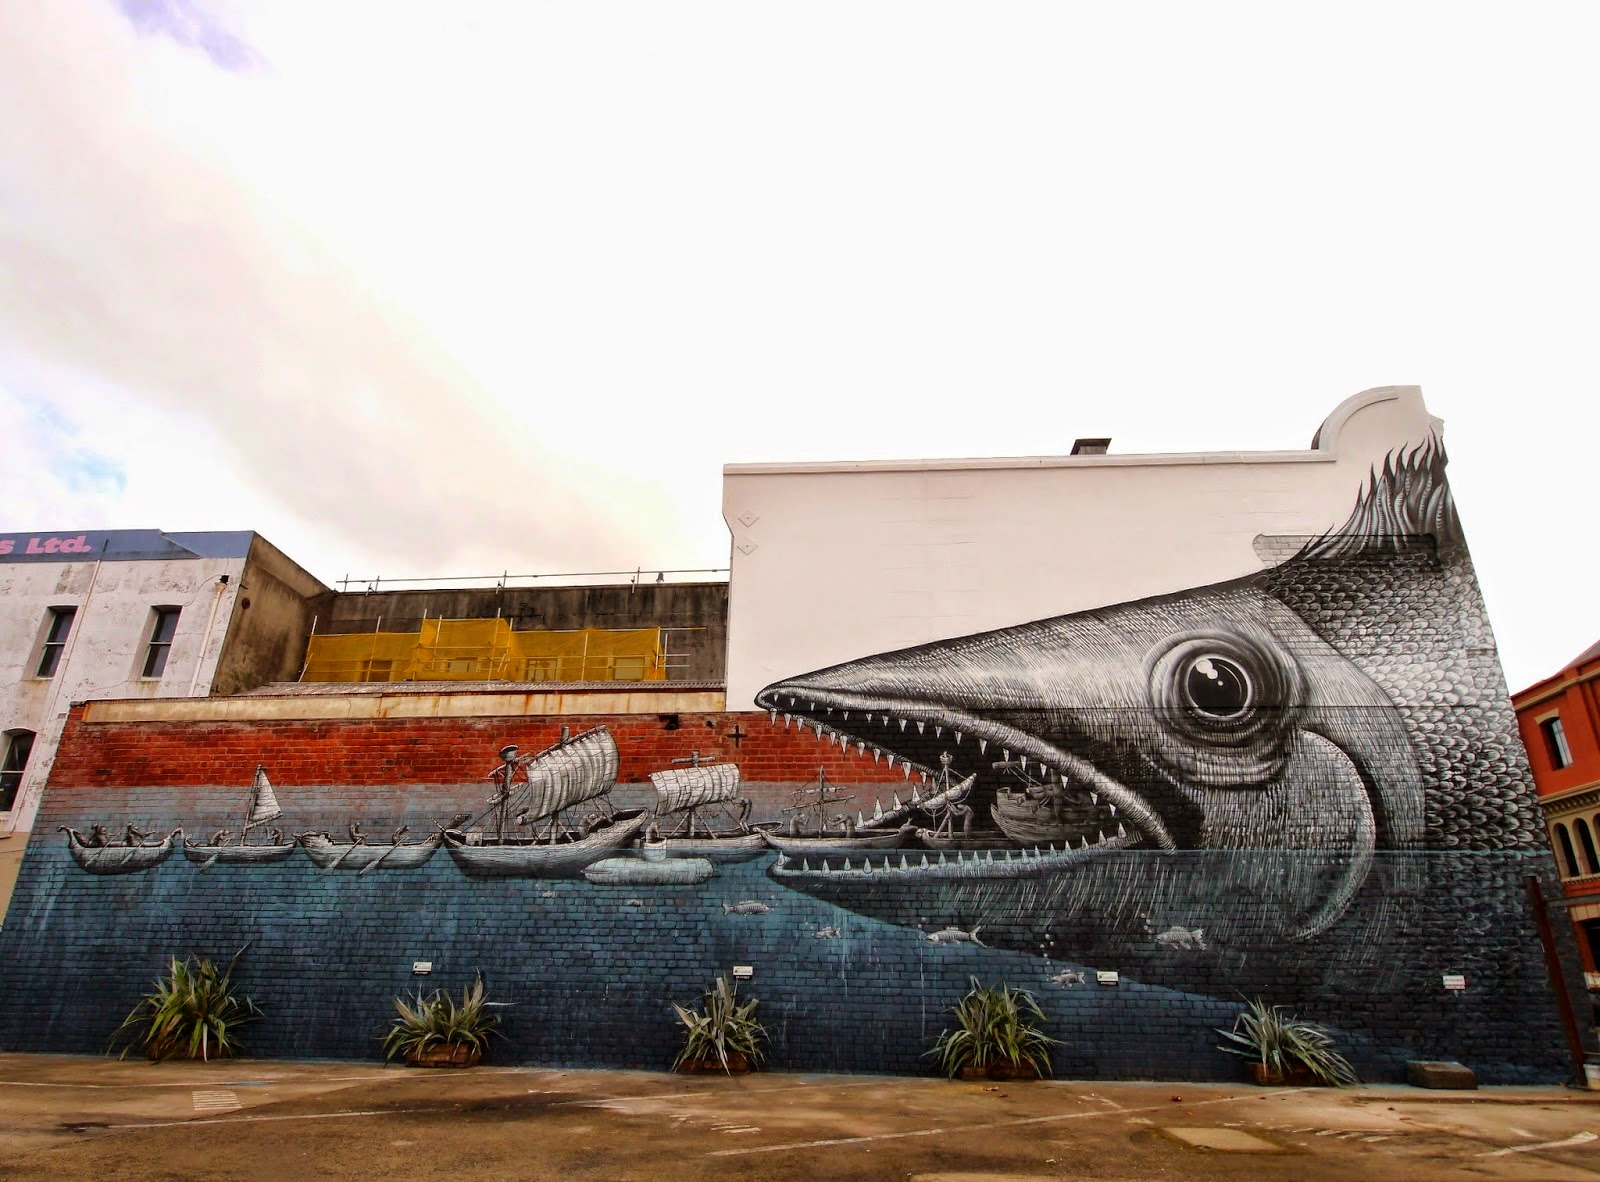 After appearing in Perth, Australia last month (covered), Phlegm is now in New Zealand where he just wrapped up this massive new piece on the streets of Dunedin.